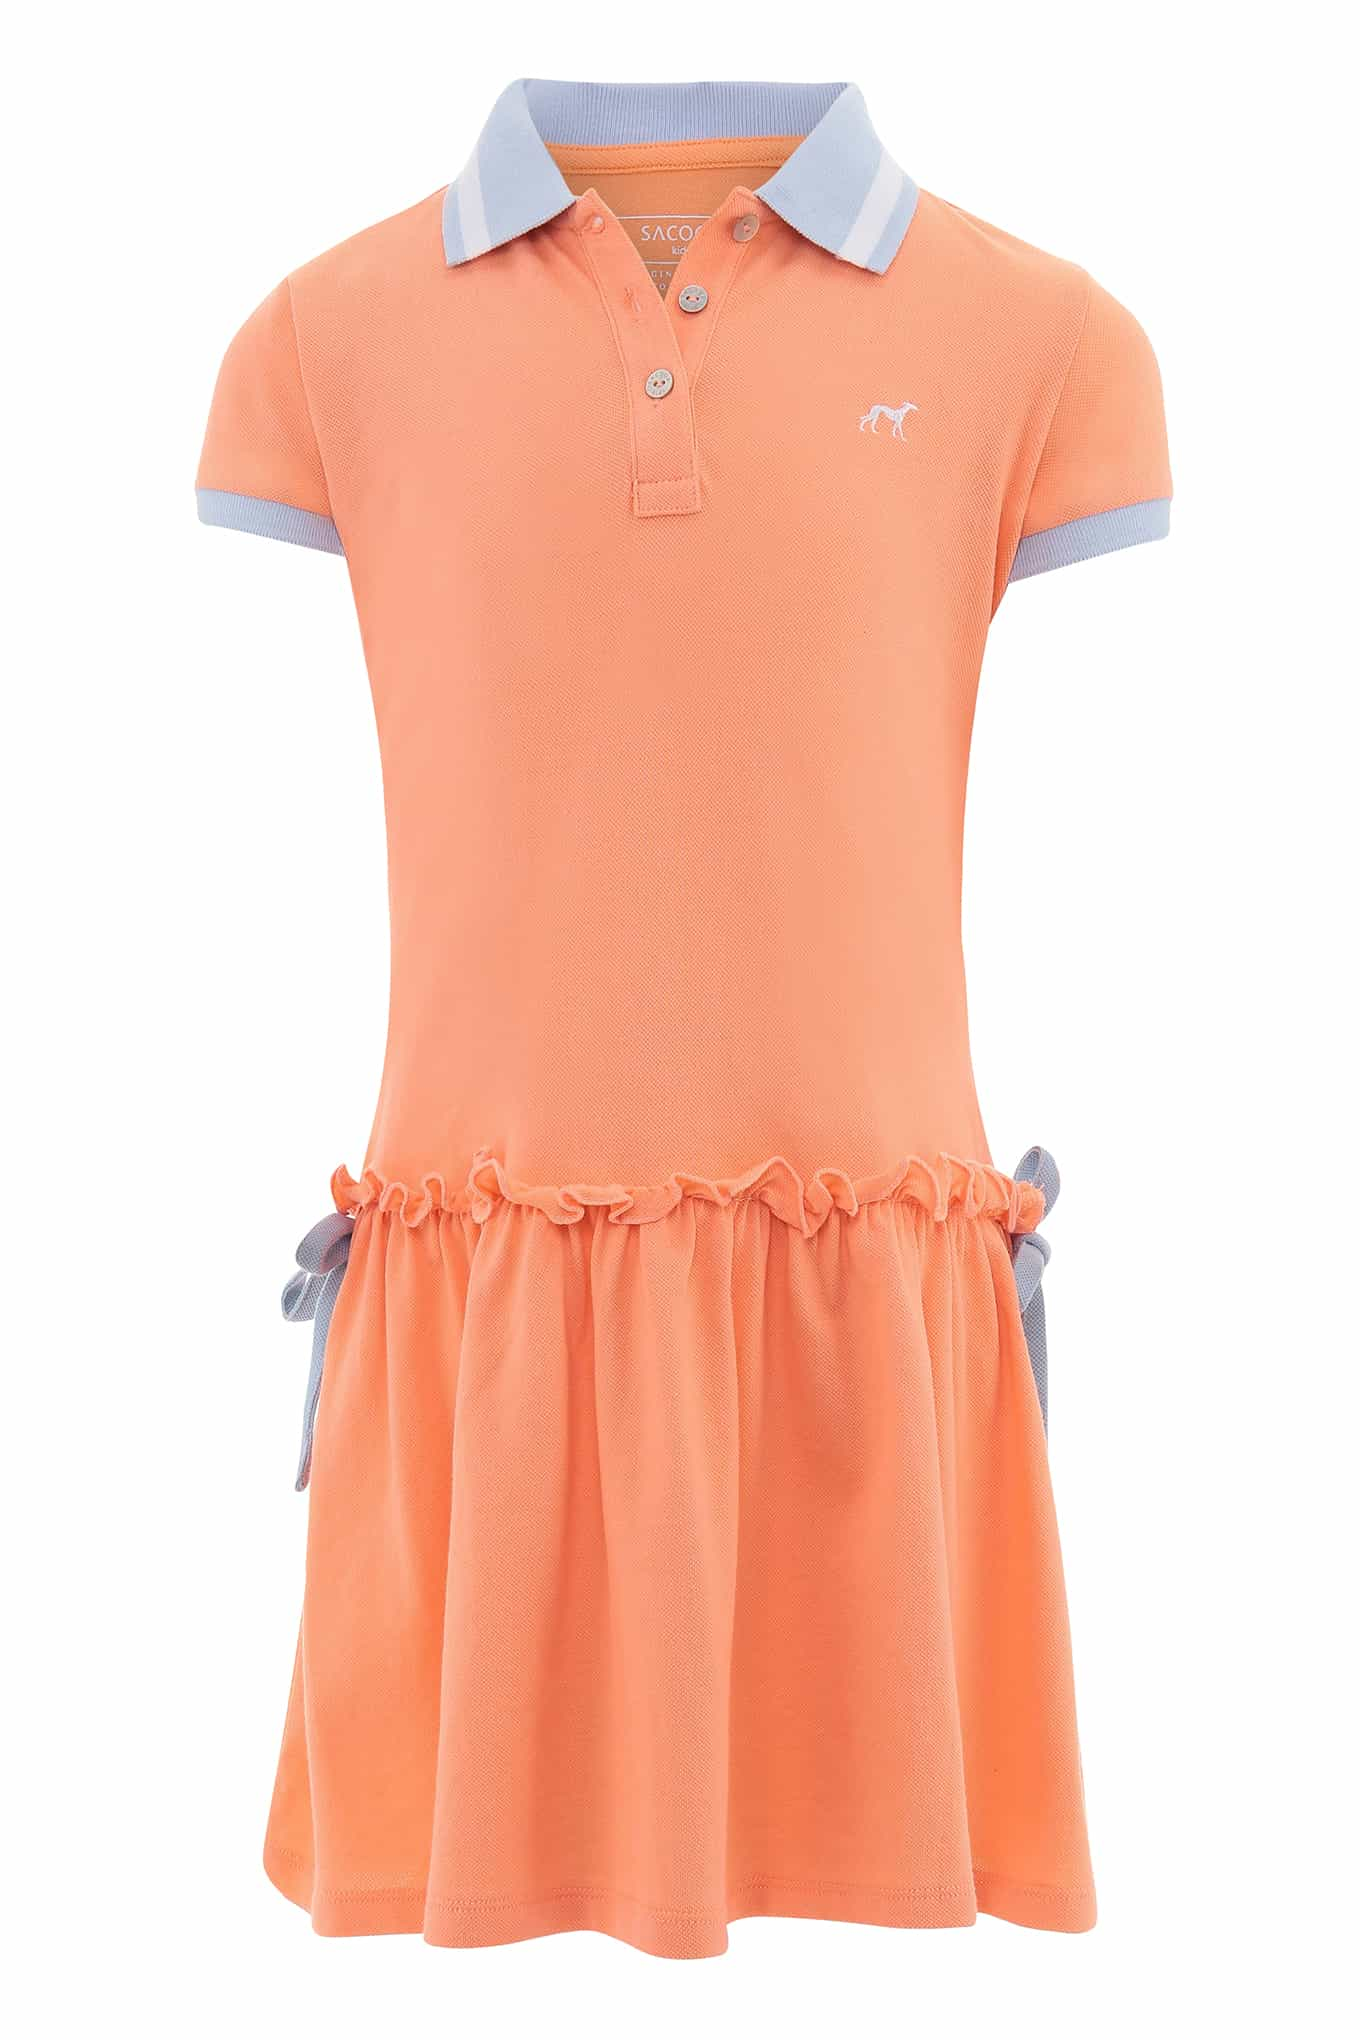 Dress Piquet Salmon Sport Girl